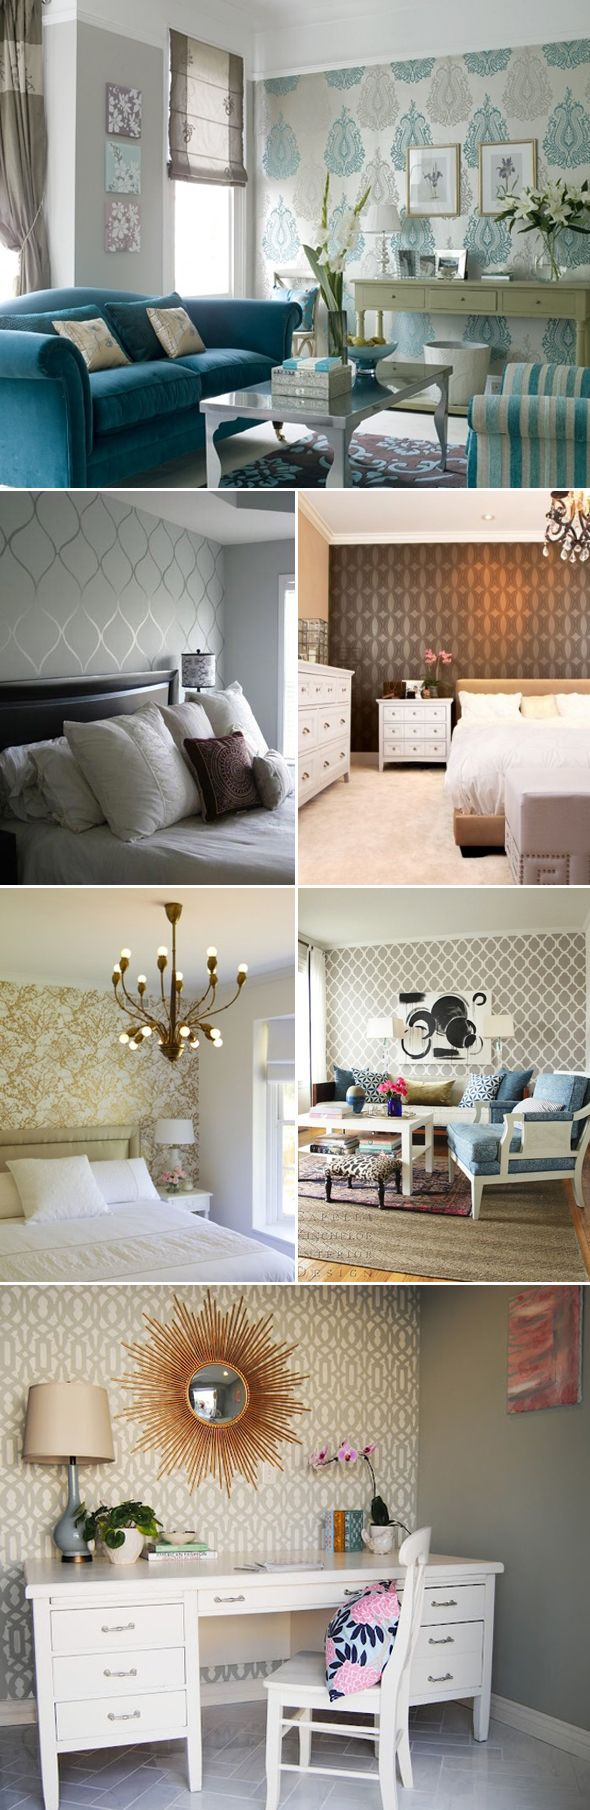 Wallpaper Accent Wall   The Style Umbrella - Inspiration for Stylish Living